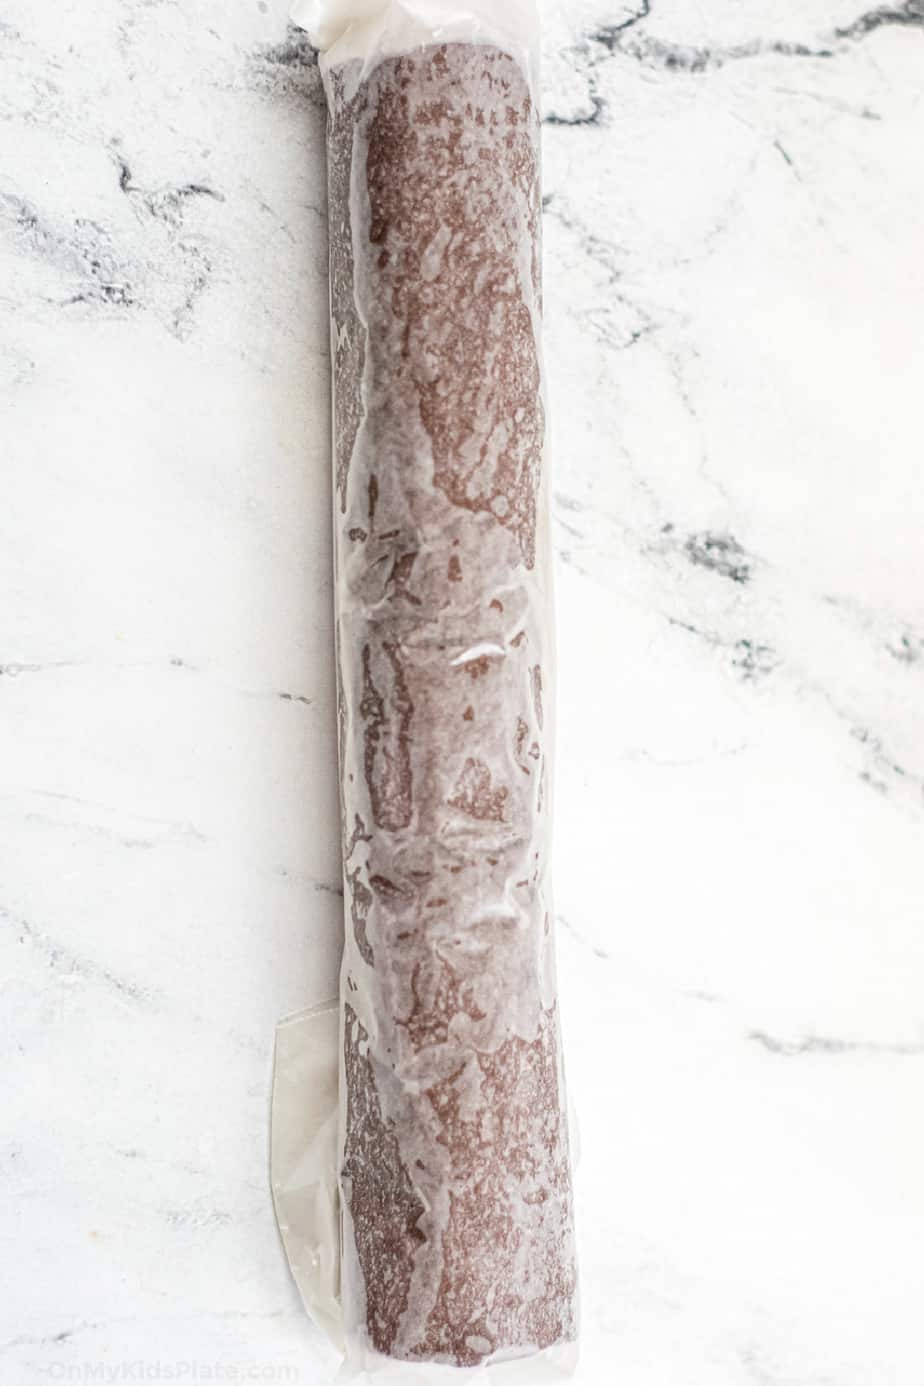 Chocolate cookie dough rolled into a long log and wrapped in parchment paper.